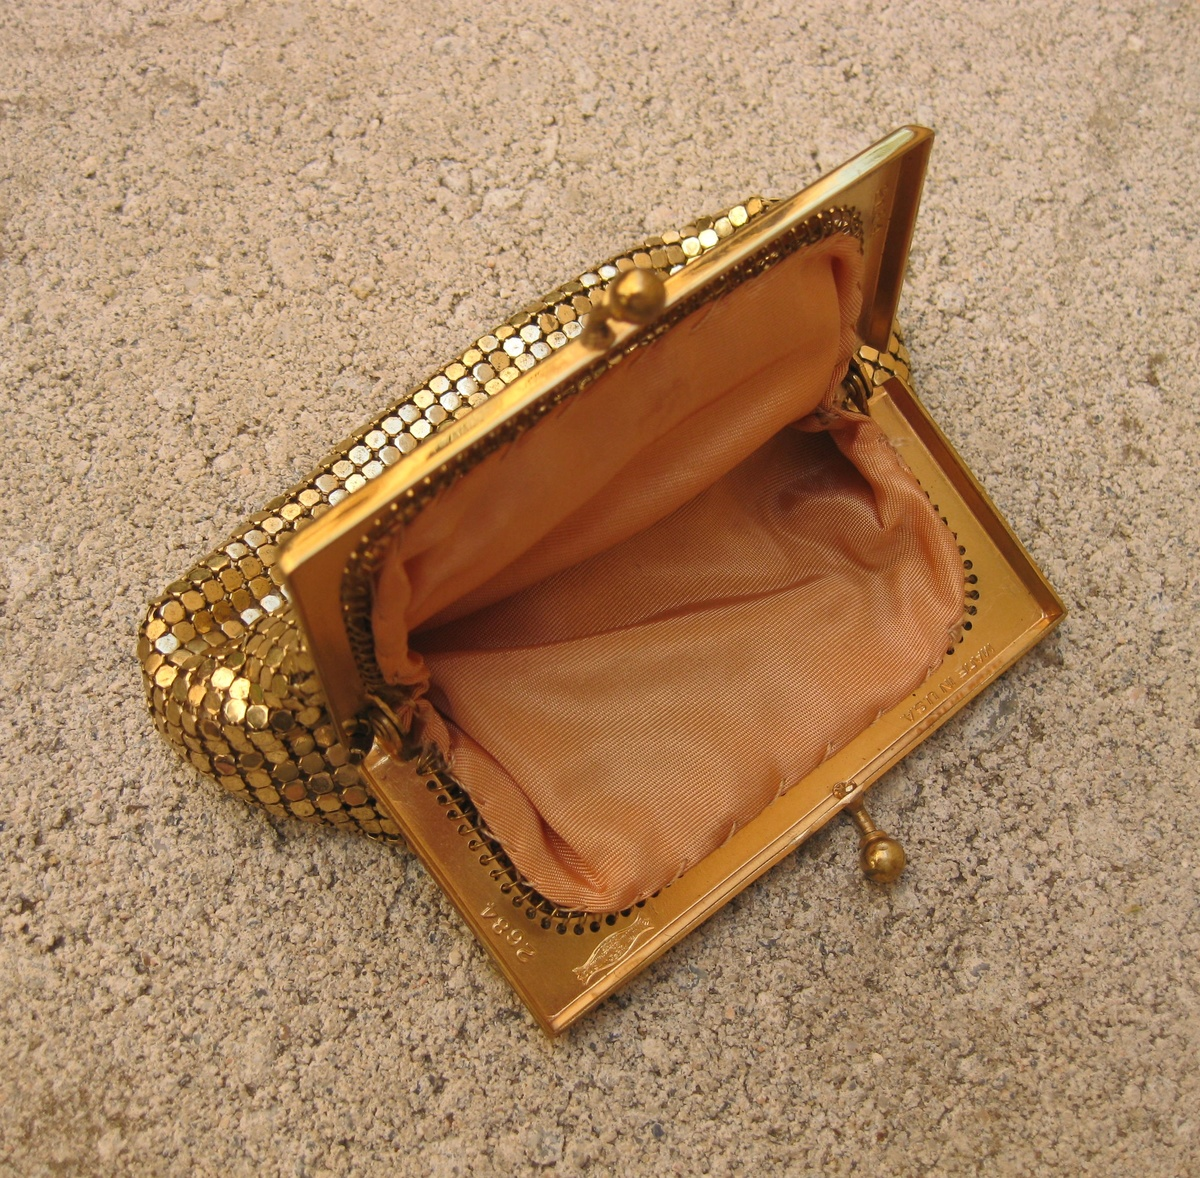 dating a whiting and davis purse